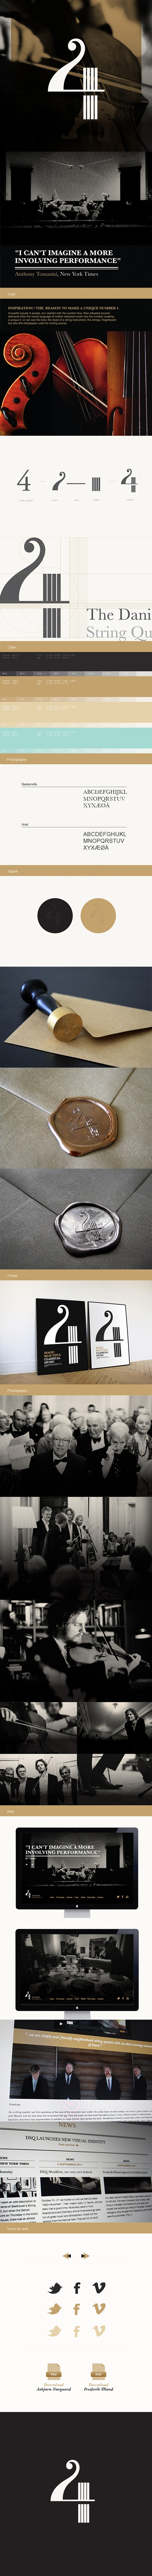 The Danish String Quartet / Corporate identity by Maibritt Lind Hansen, via Behance